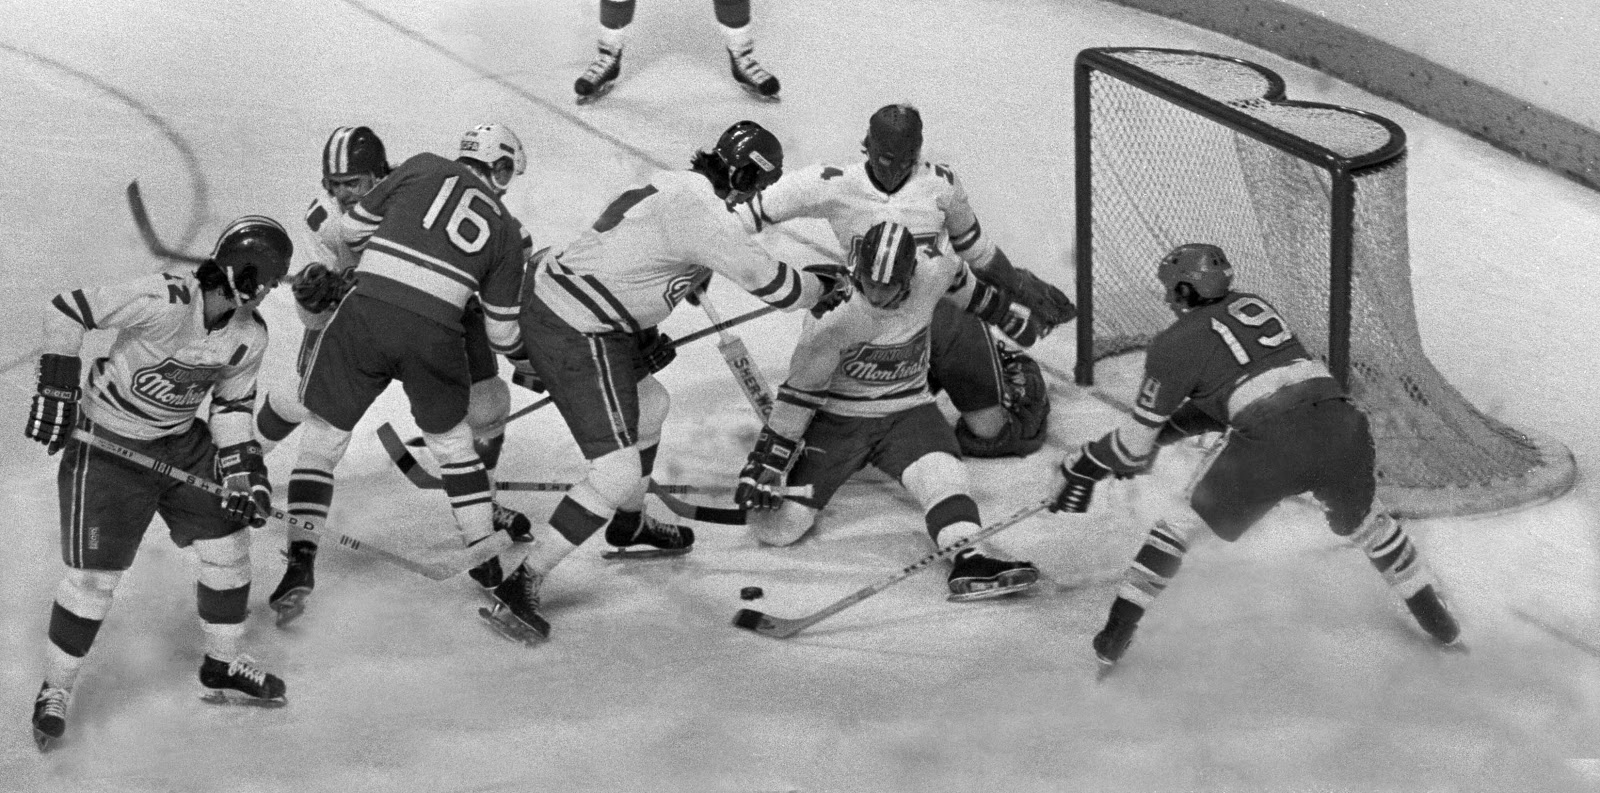 Montreal Juniors vs Soviet Selects, Dec. 1974 2.jpg